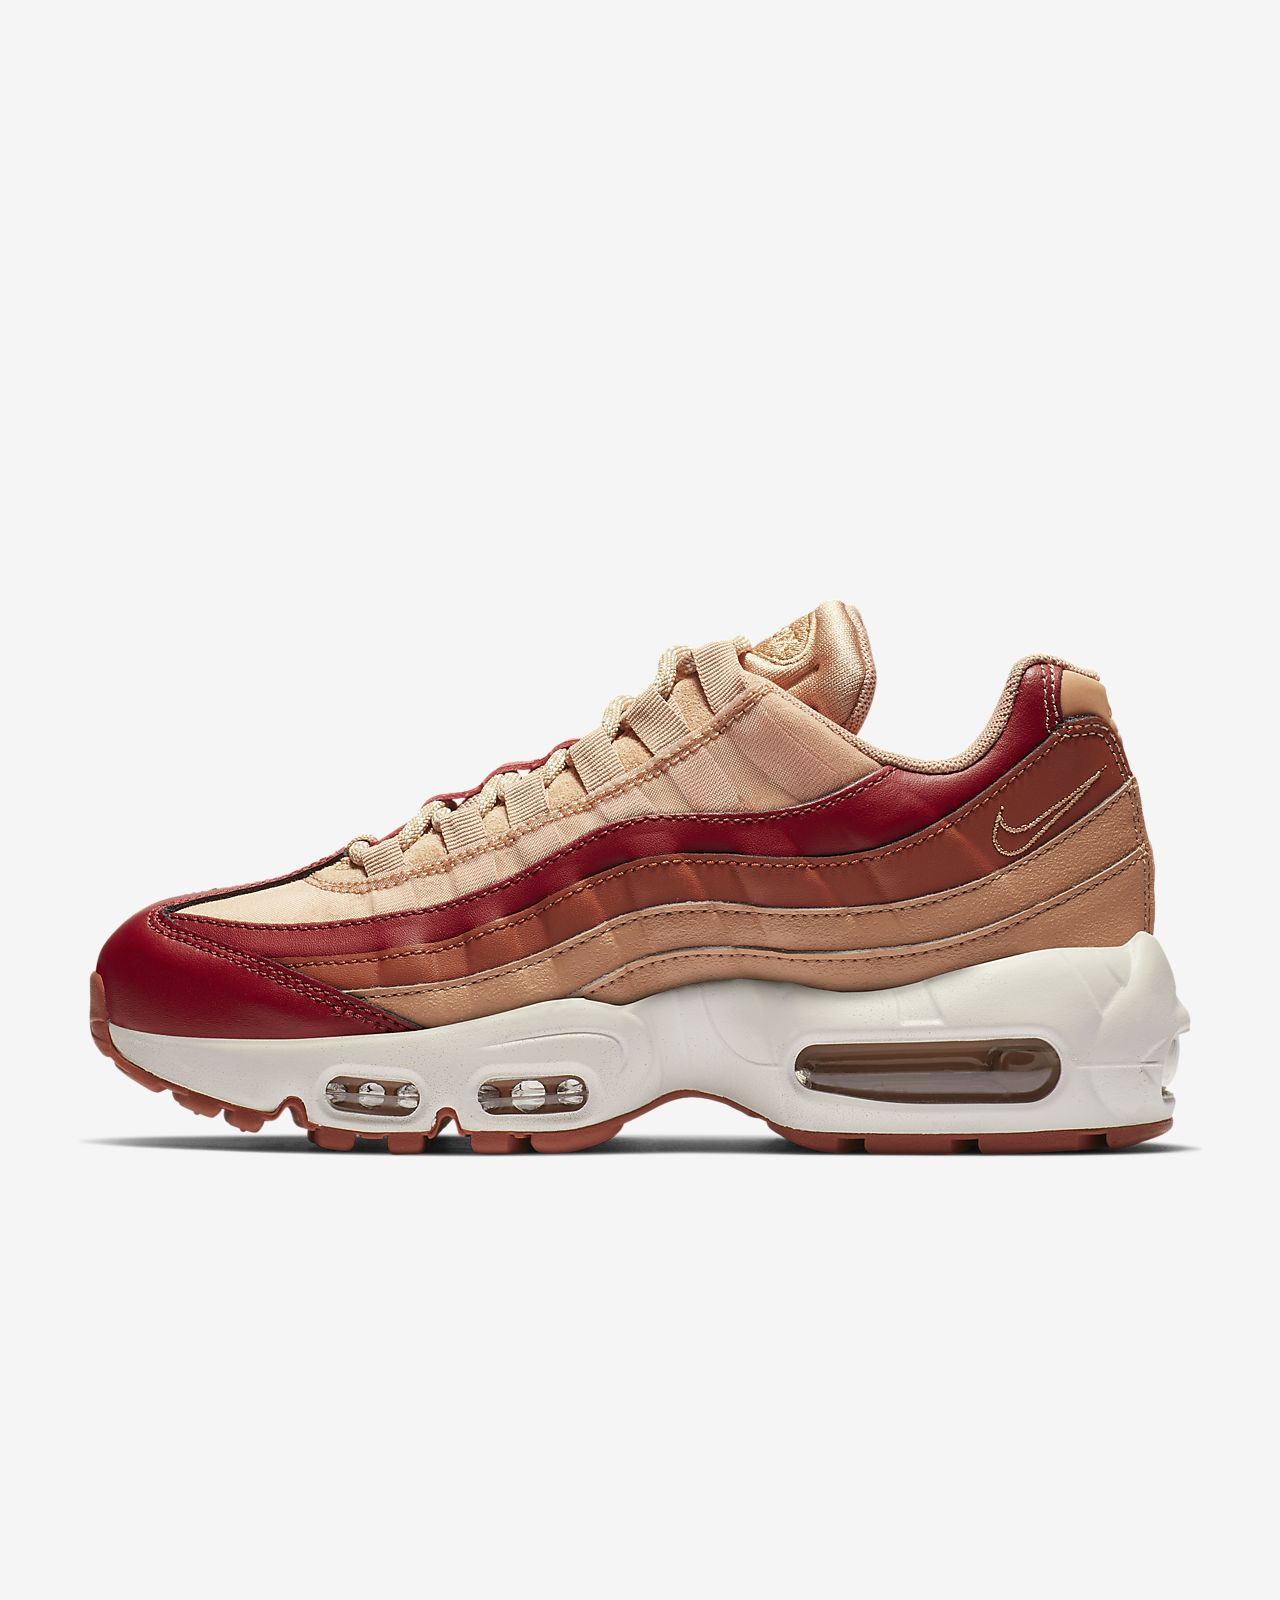 new concept 94562 badd3 Chaussure Nike Air Max 95 pour Femme